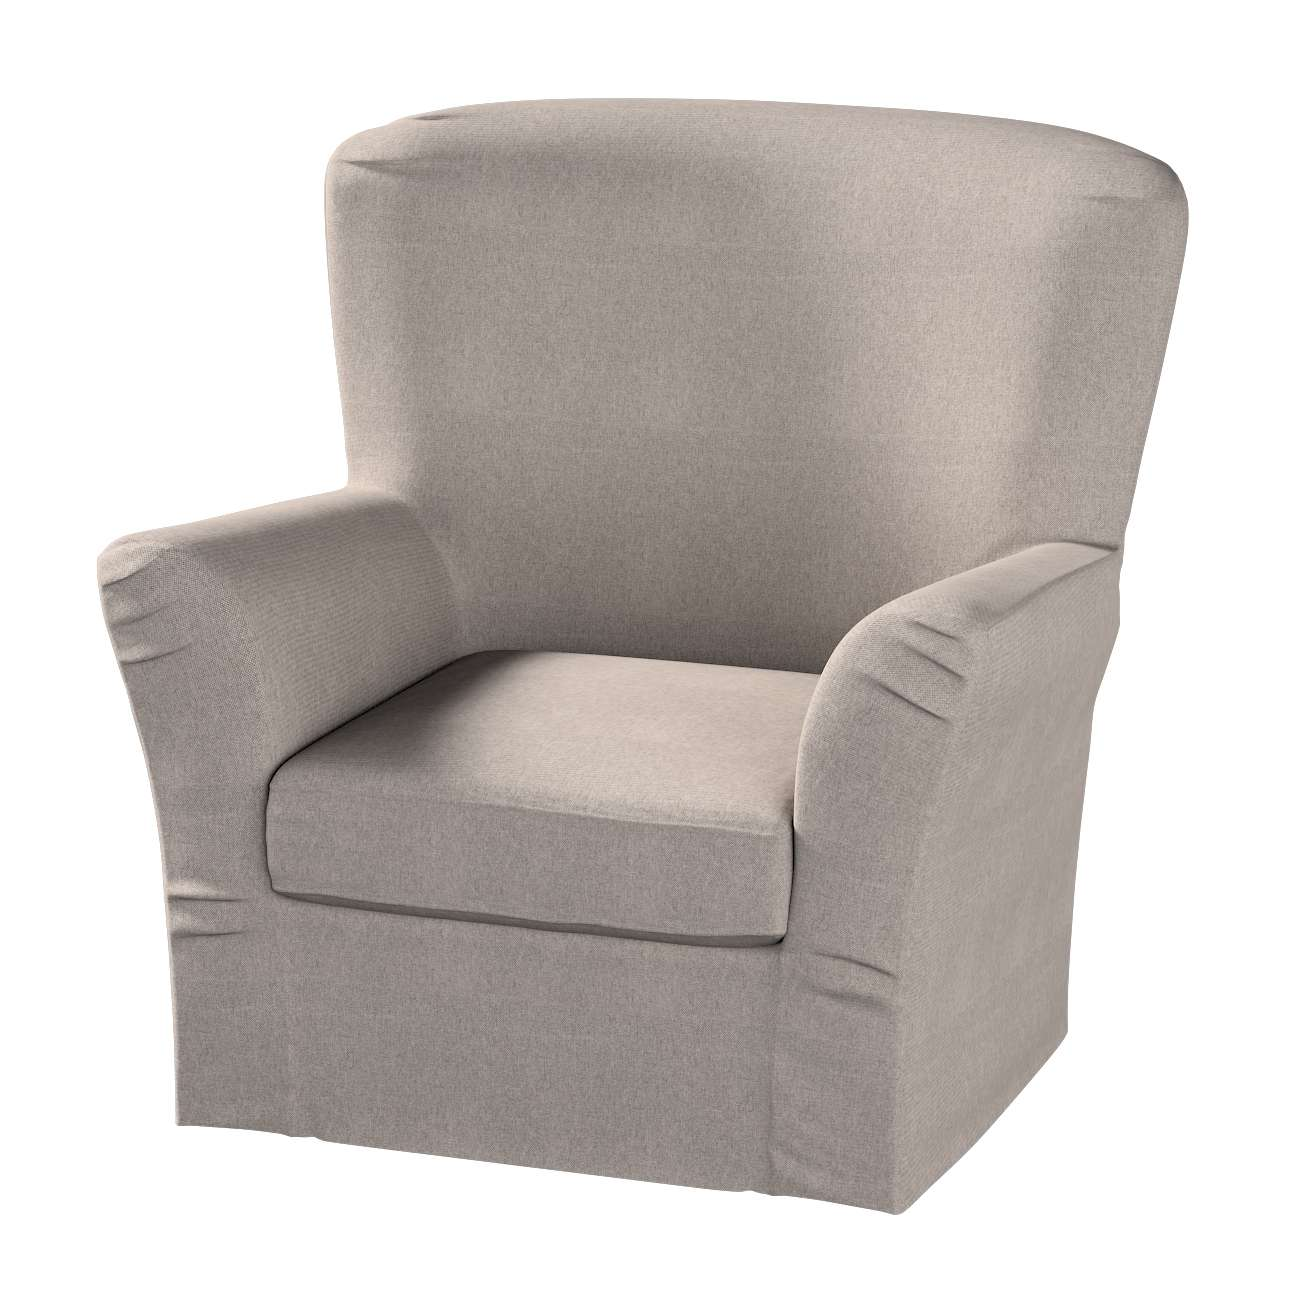 Tomelilla armchair  Tomelilla armchair in collection Etna, fabric: 705-09